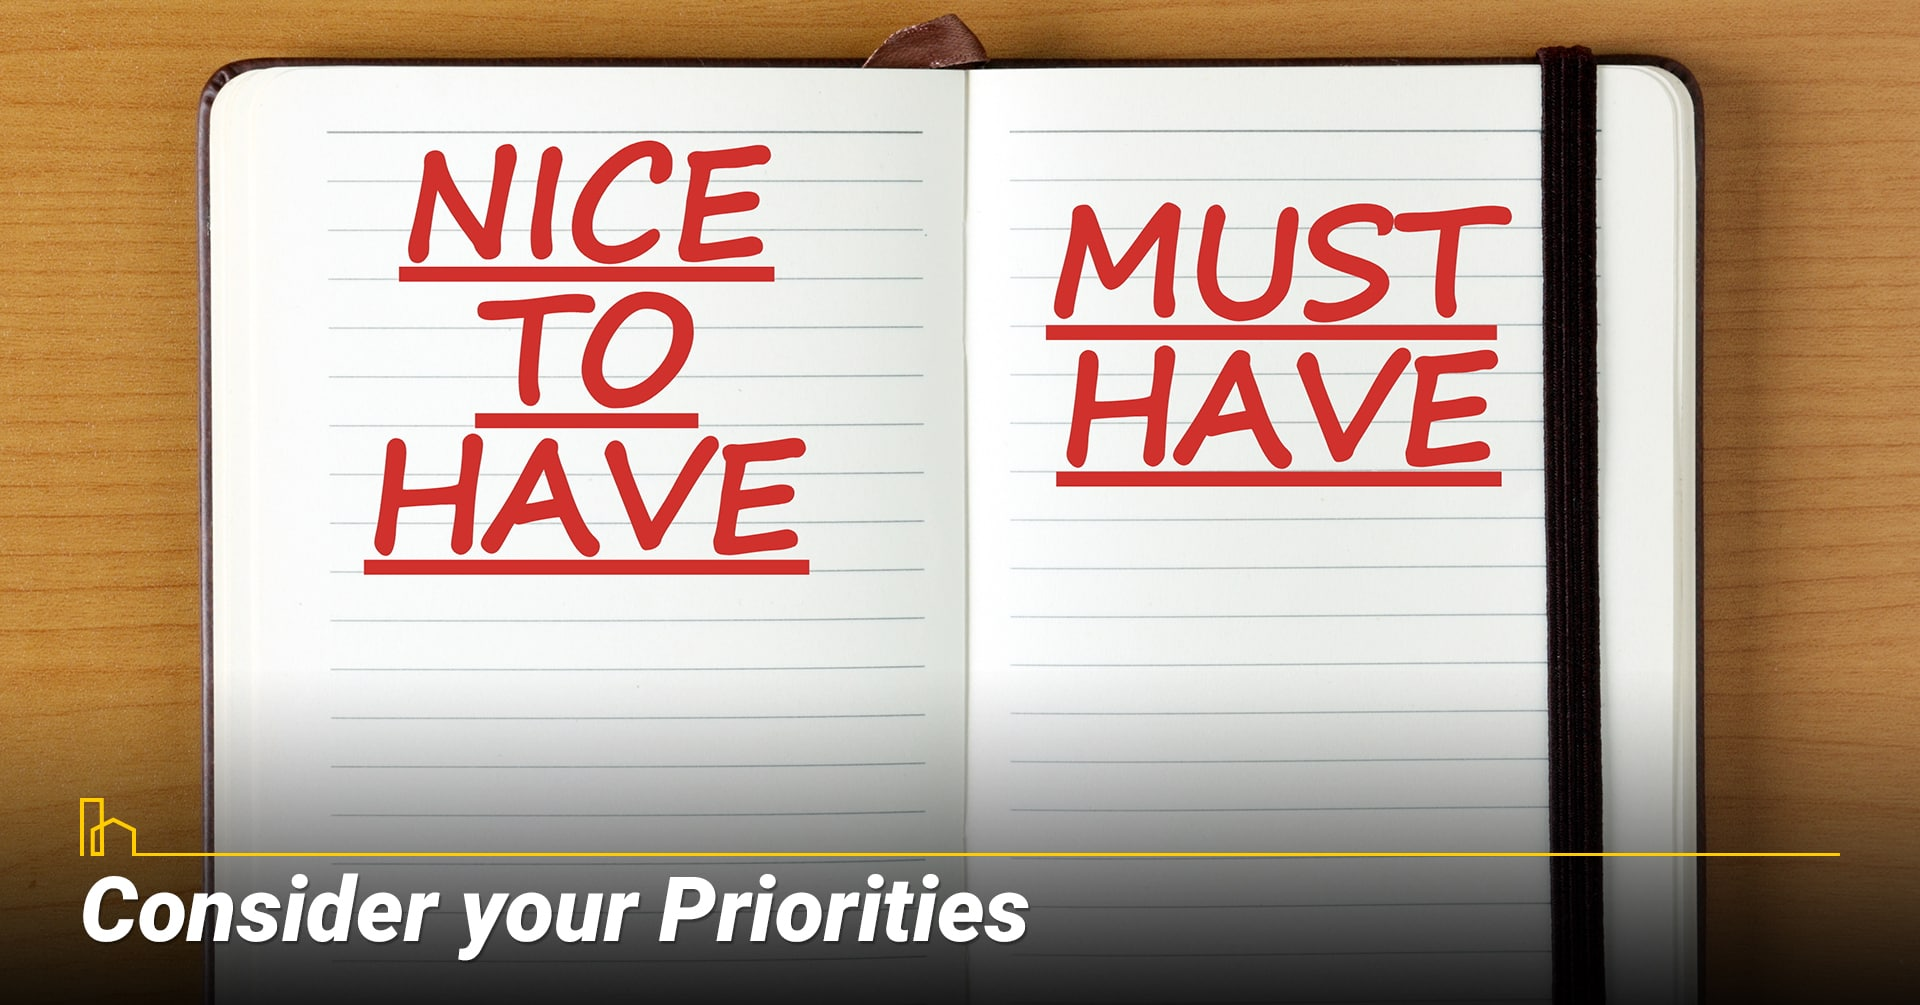 Consider your Priorities, Nice to have and must have